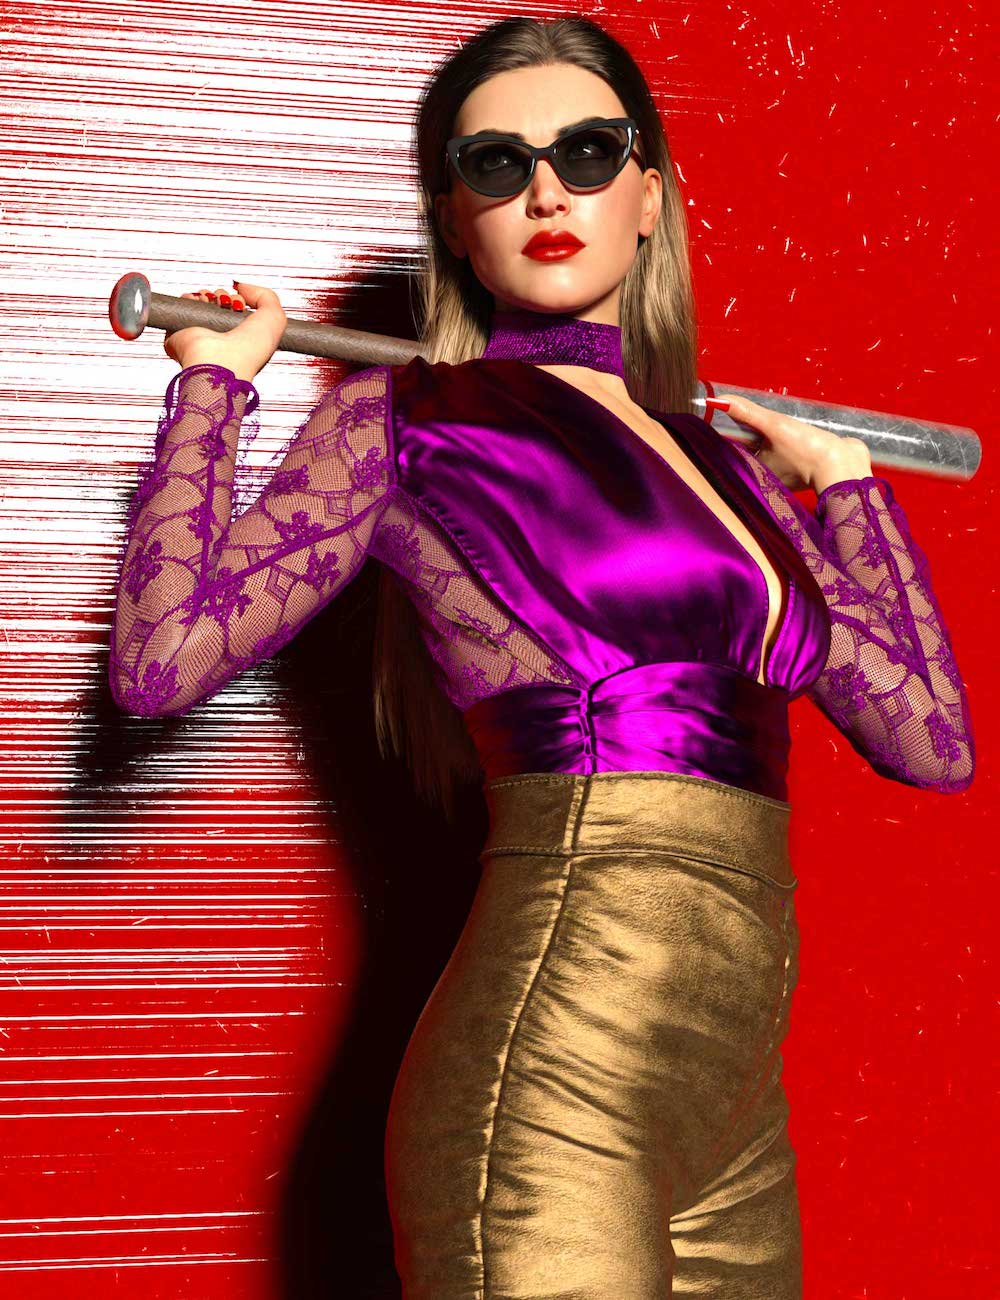 After Dark Leather Outfit Textures by: Linday, 3D Models by Daz 3D